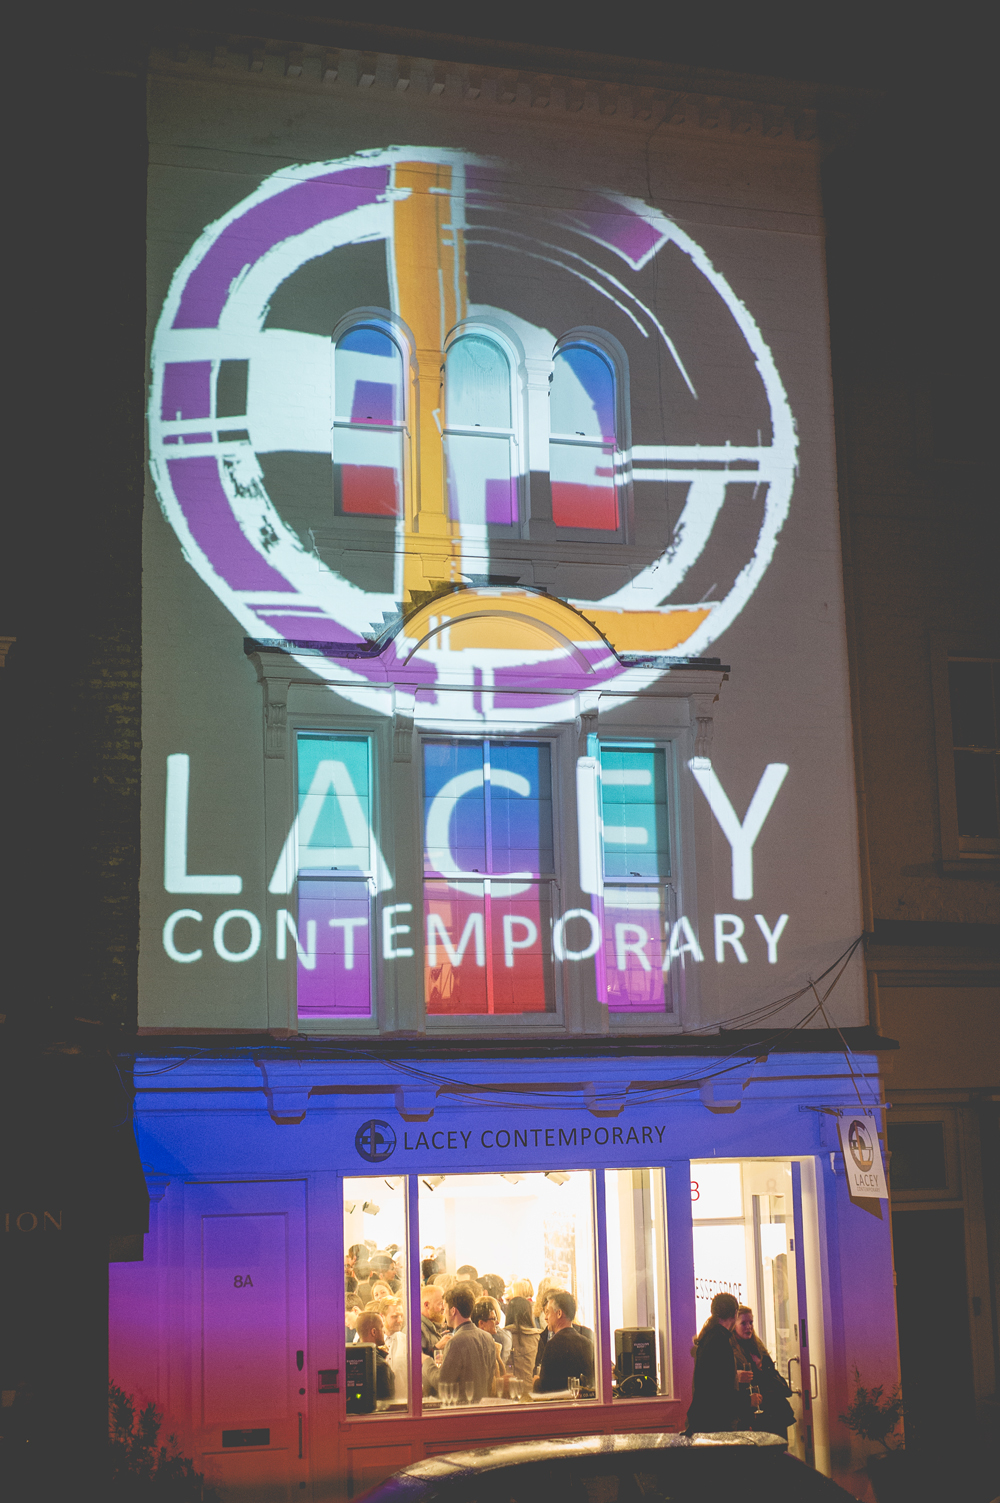 Image courtesy of Lacey Contemporary Gallery